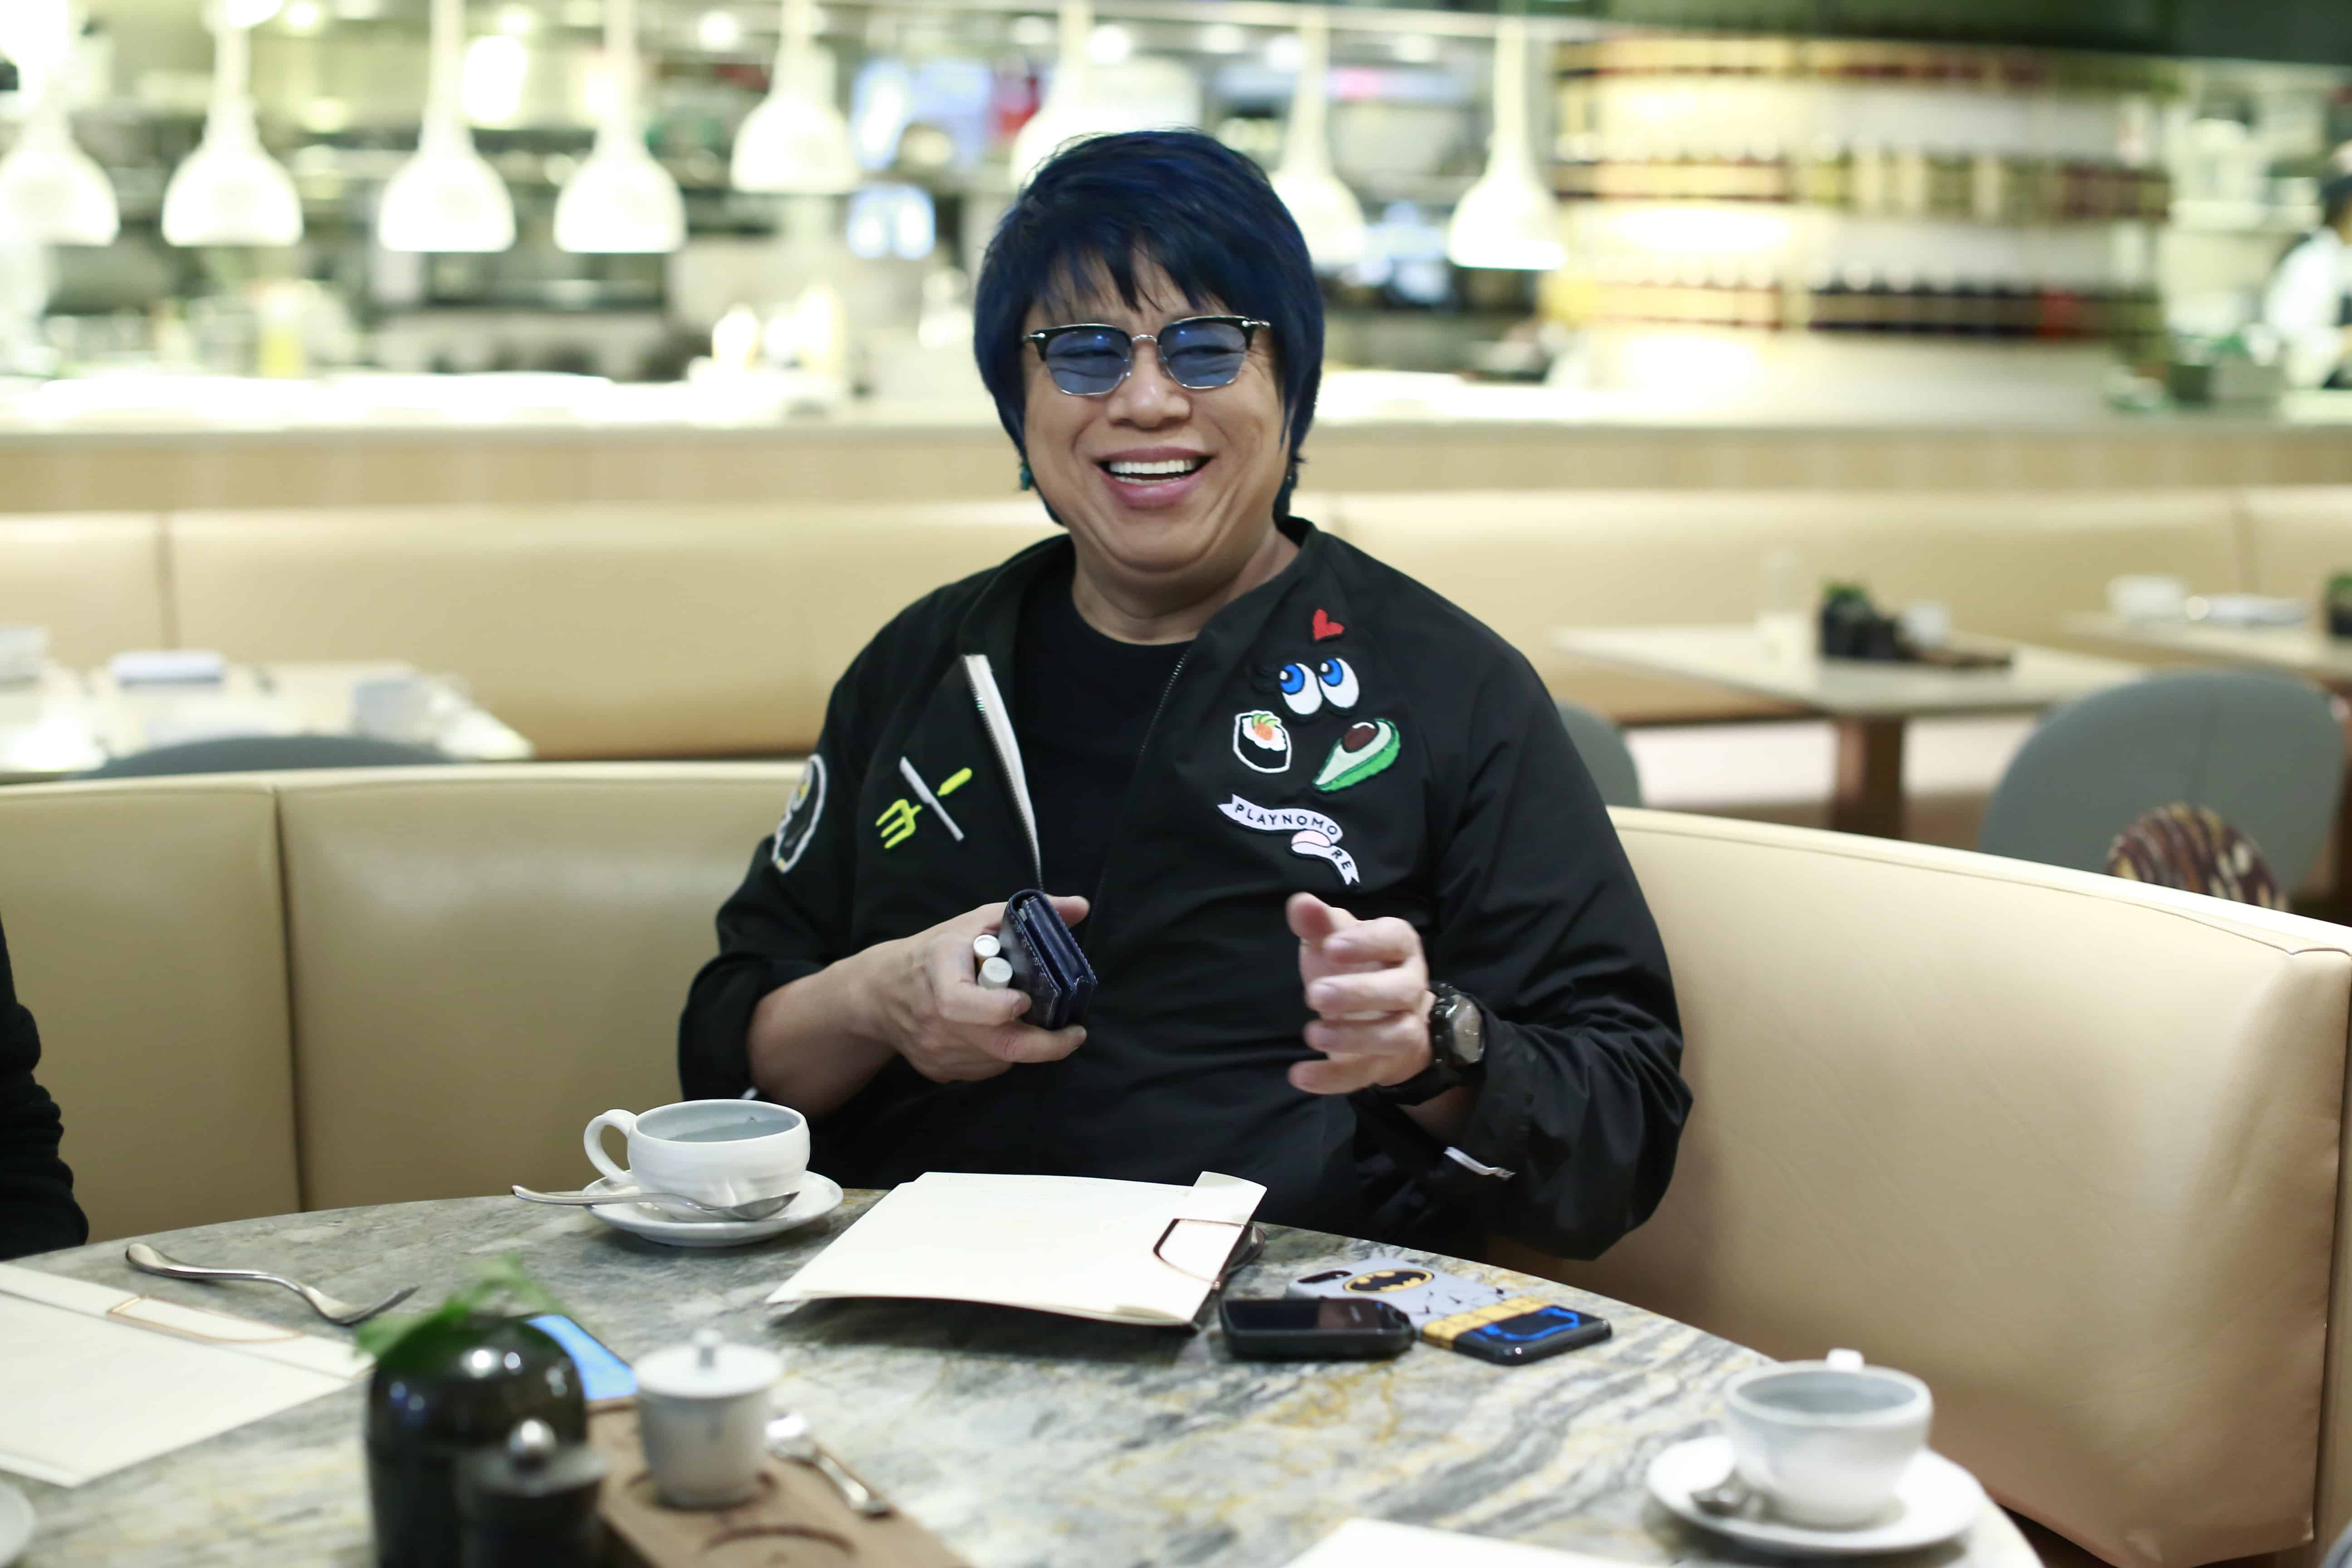 EcoLux☆Lifestyle: Chef Alvin Leung Talks Diabetes